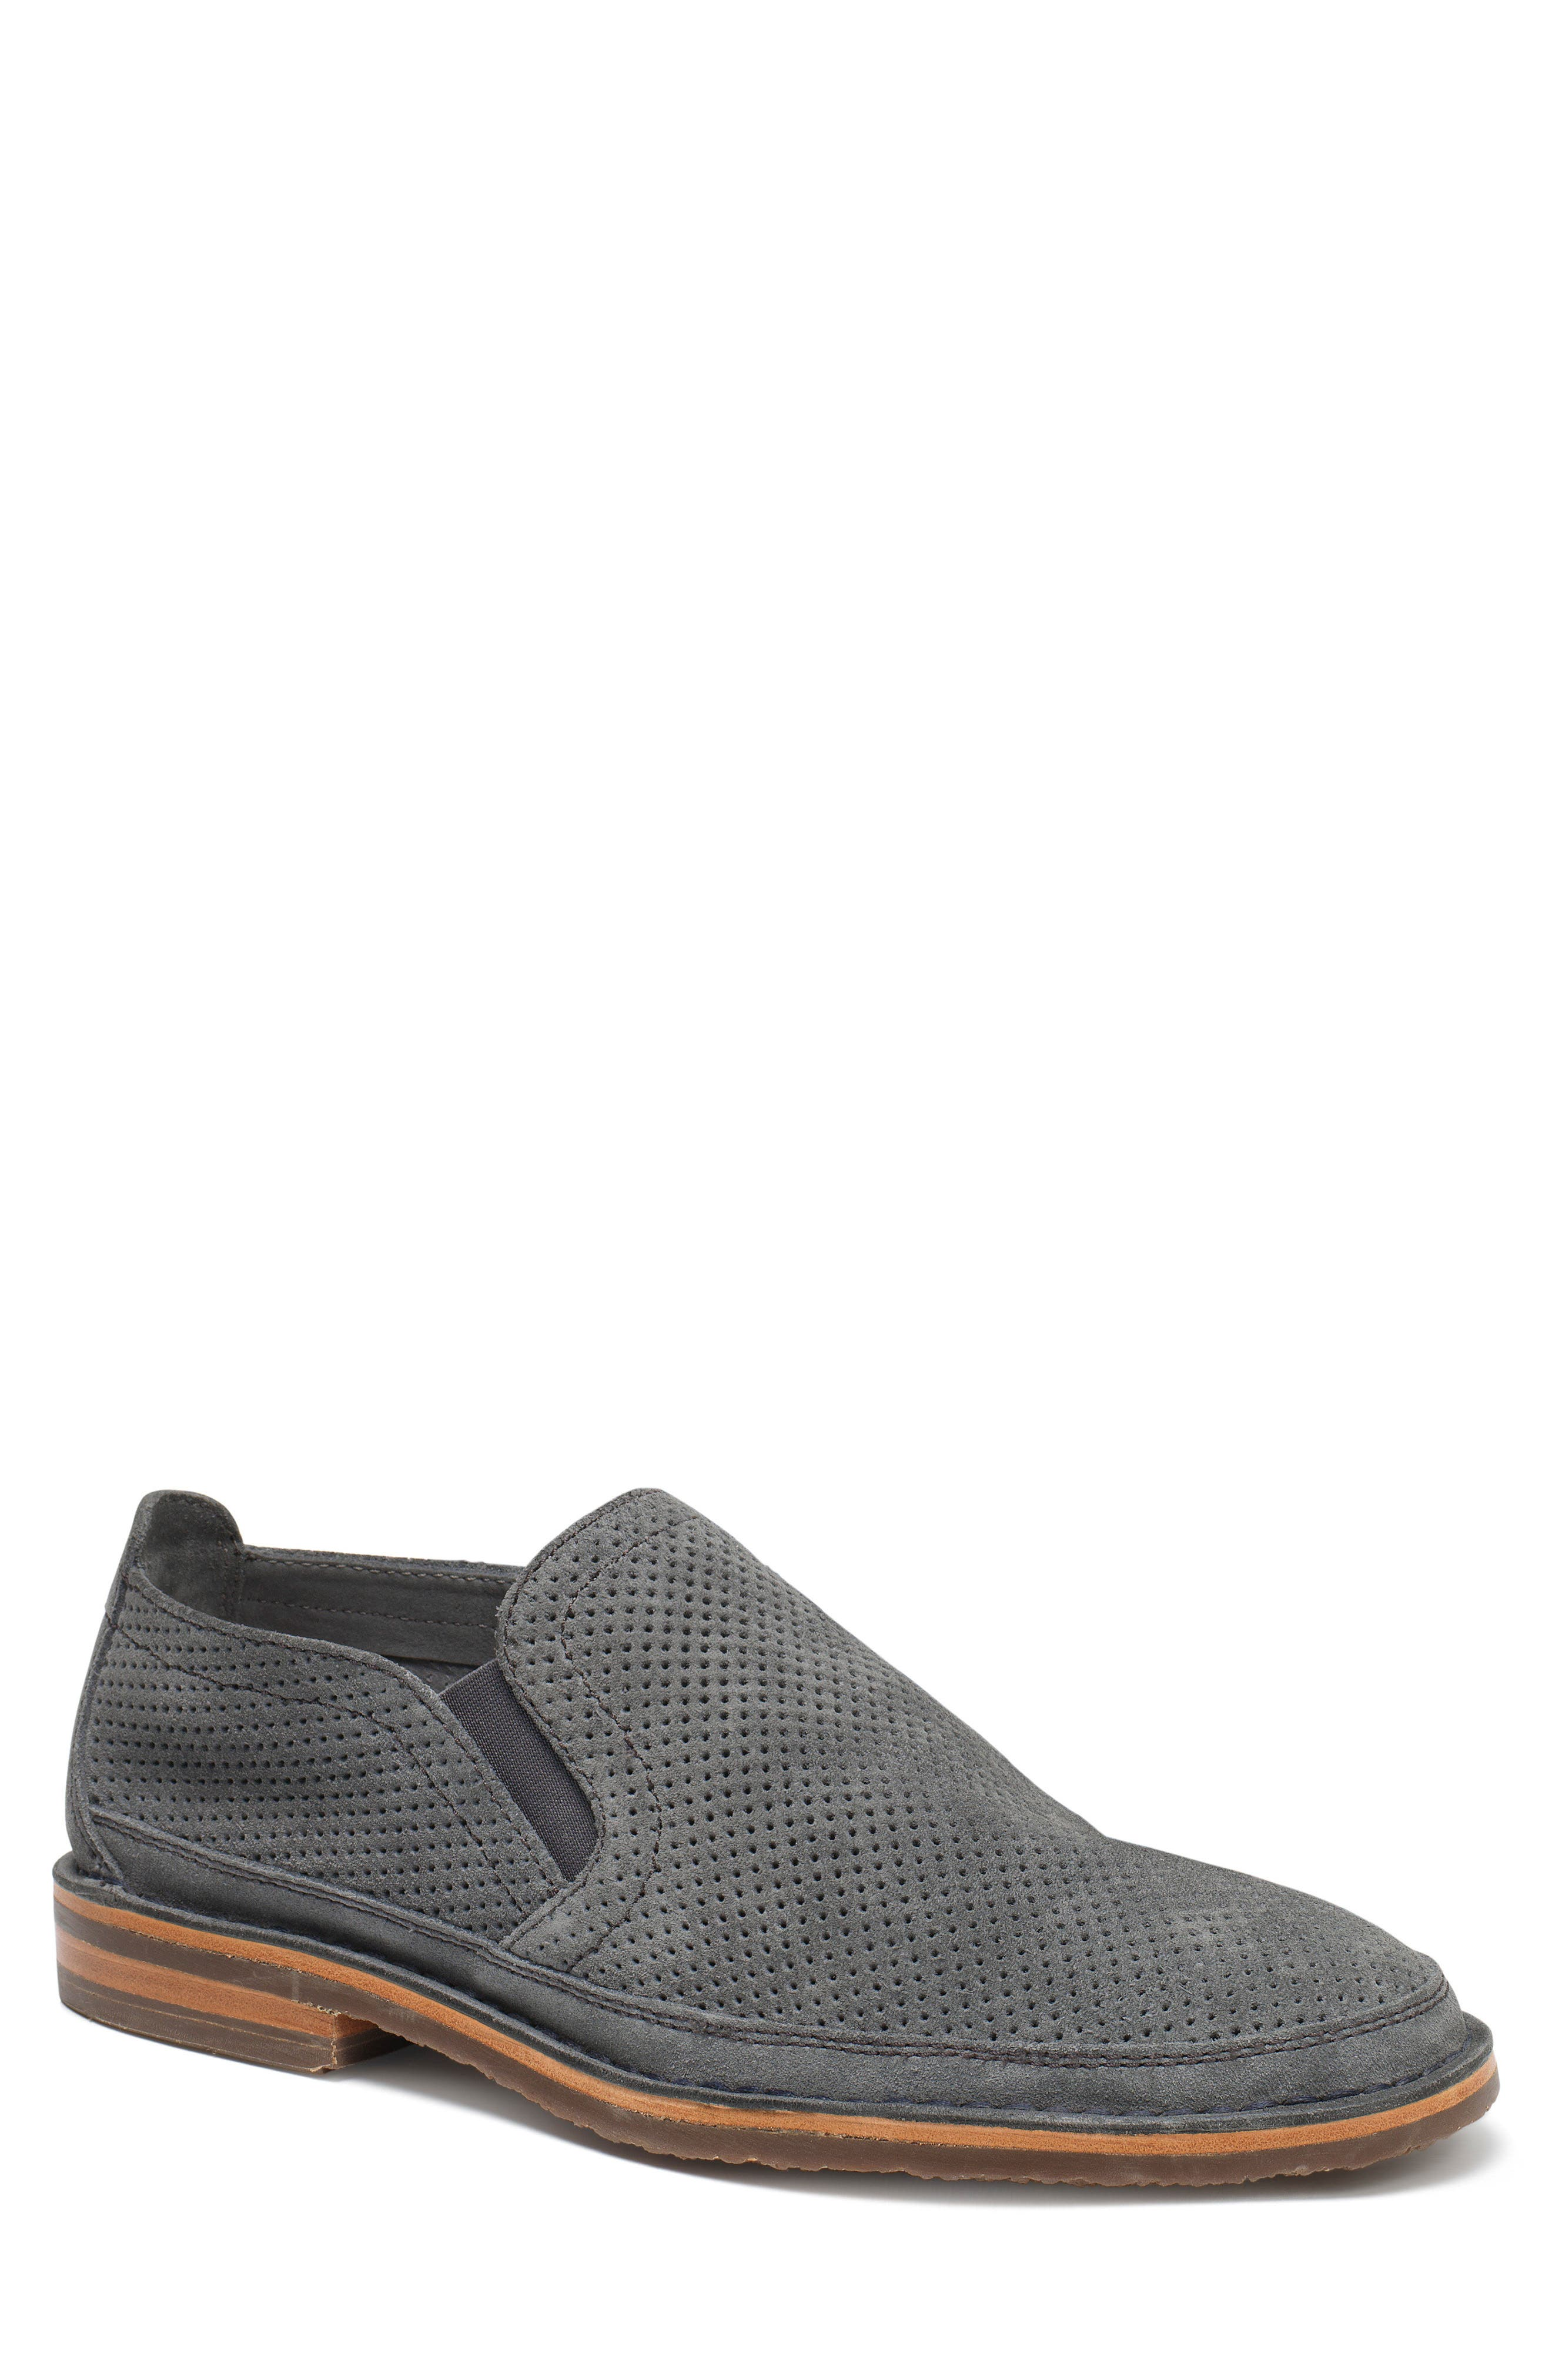 TRASK,                             Bradley Perforated Slip-On,                             Main thumbnail 1, color,                             SLATE GREY SUEDE